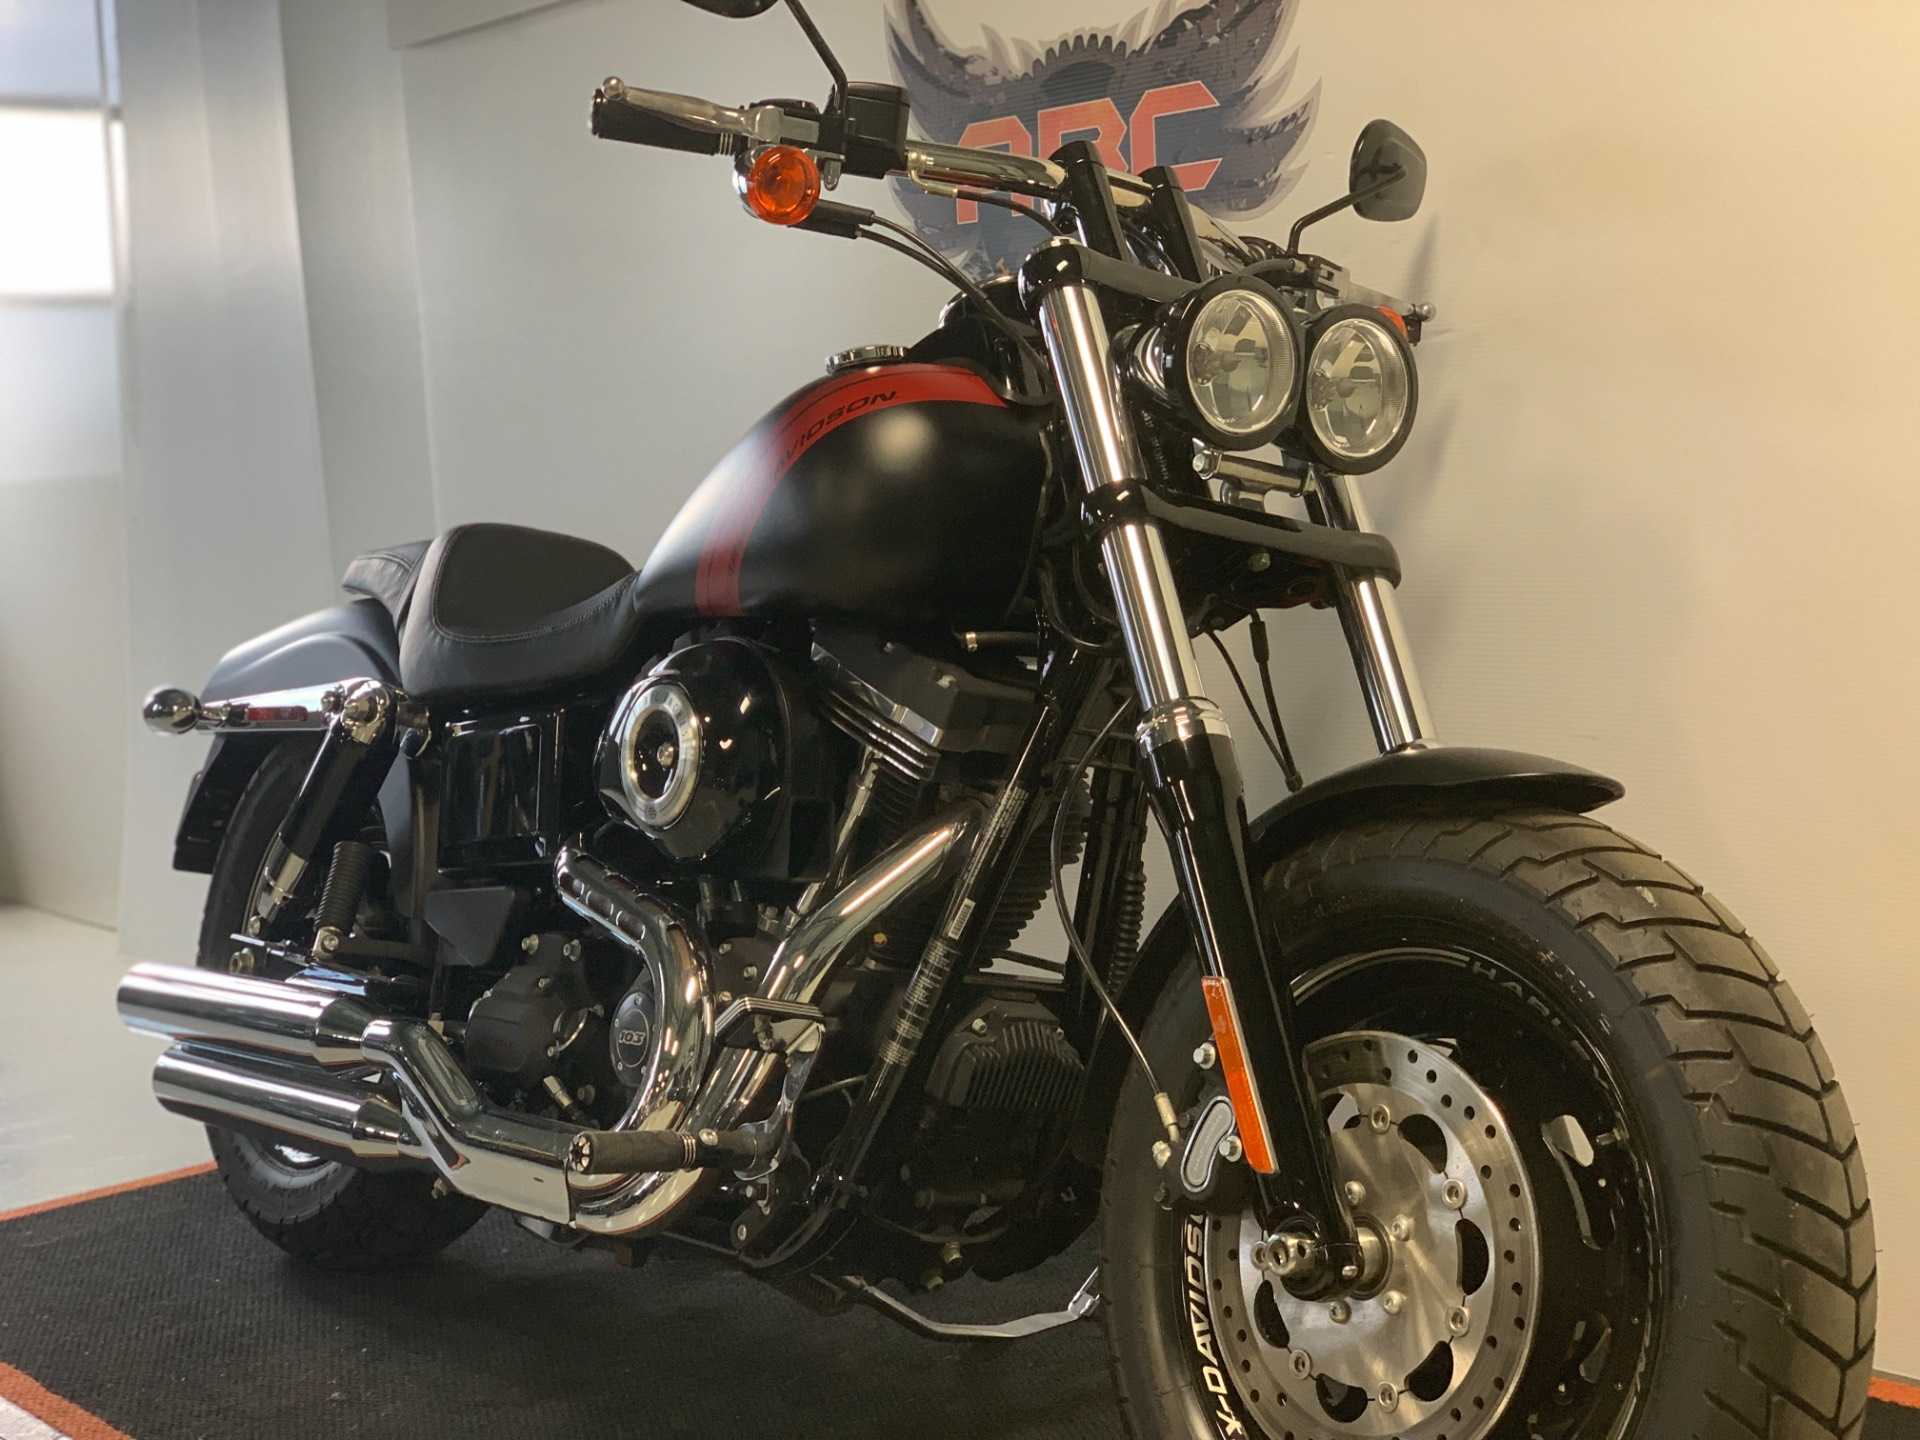 2015 Harley-Davidson FXDF103 in Waterford, Michigan - Photo 2